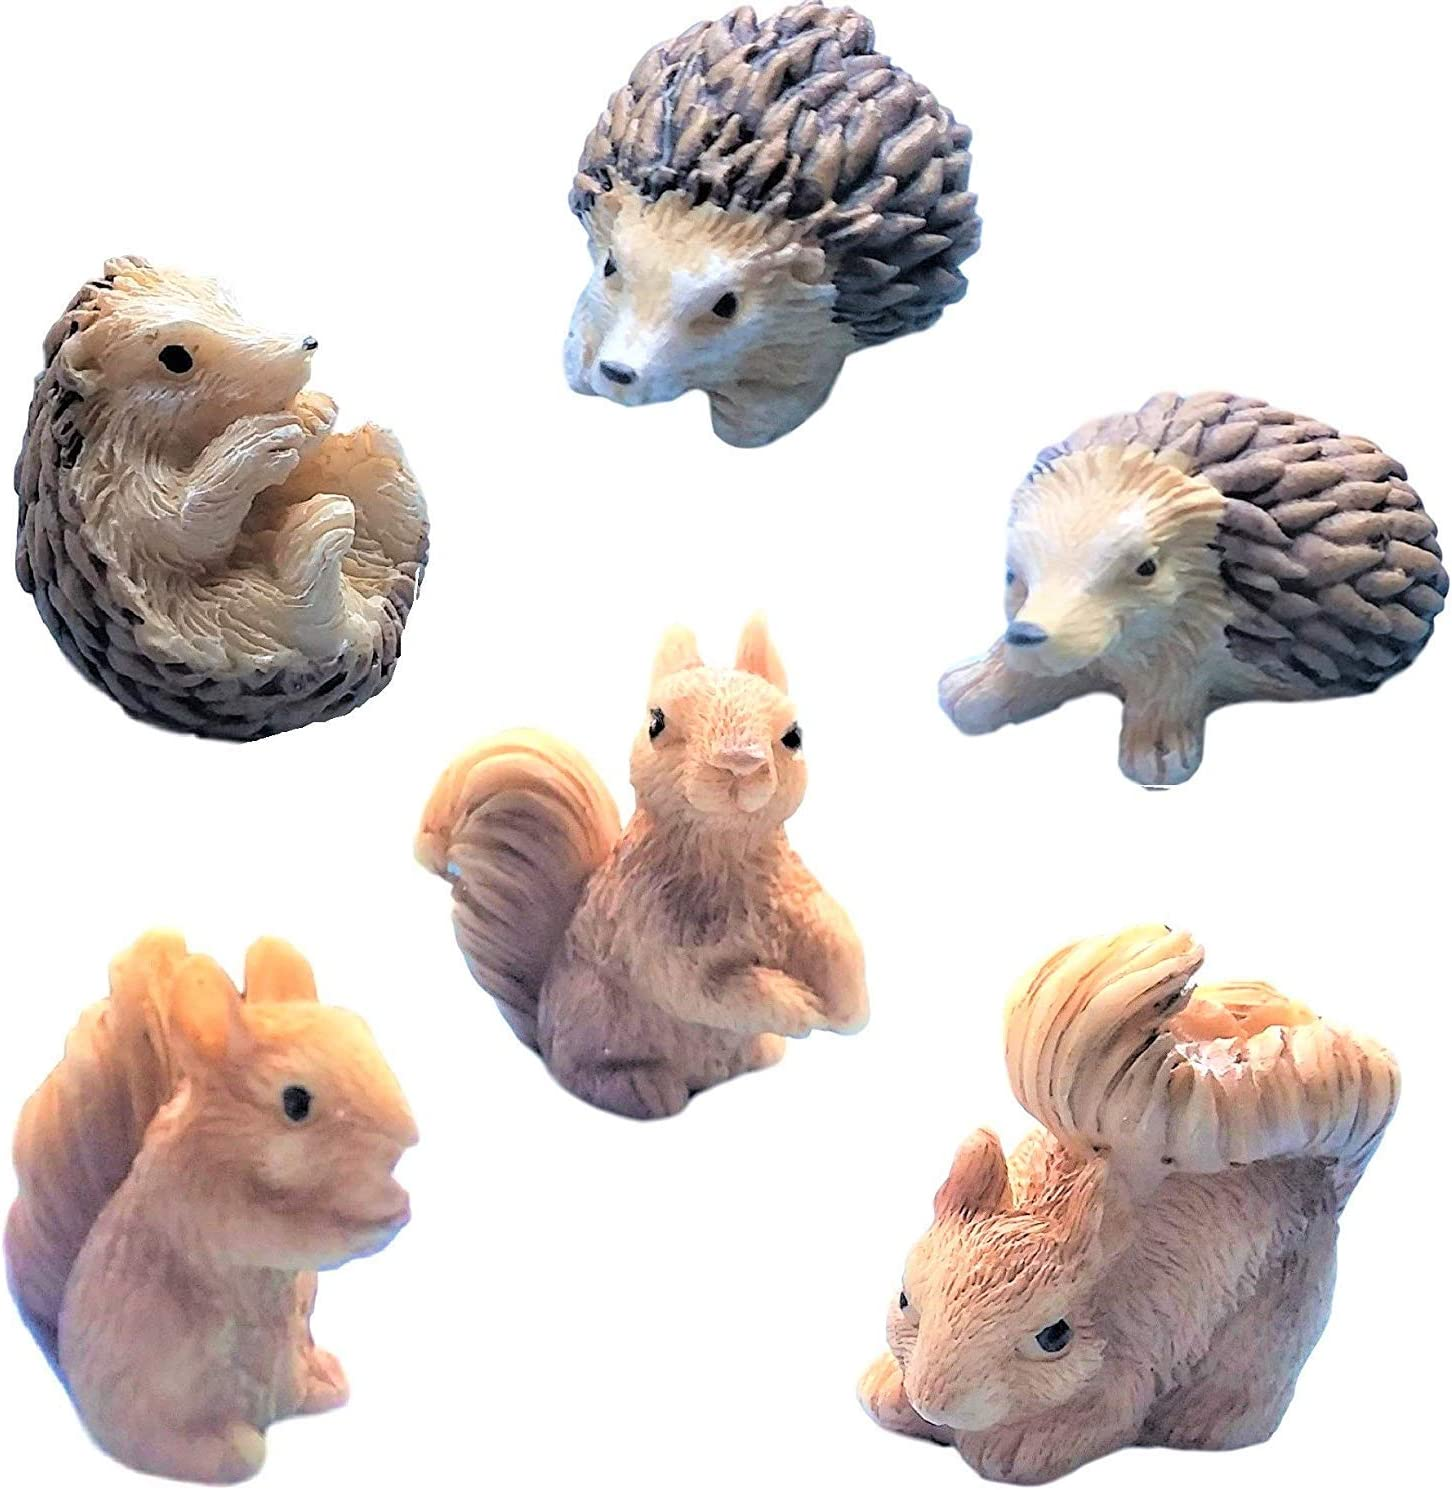 """Miniature Fairy Garden Realistic Tiny 1.25"""" Hedgehogs and 1.2"""" x 1"""" x 0.70"""" Squirrels - Made of Resin - for Outdoor or House Decor - Bundle of 6 Mini Garden Animals - Farm Woodland Creatures"""